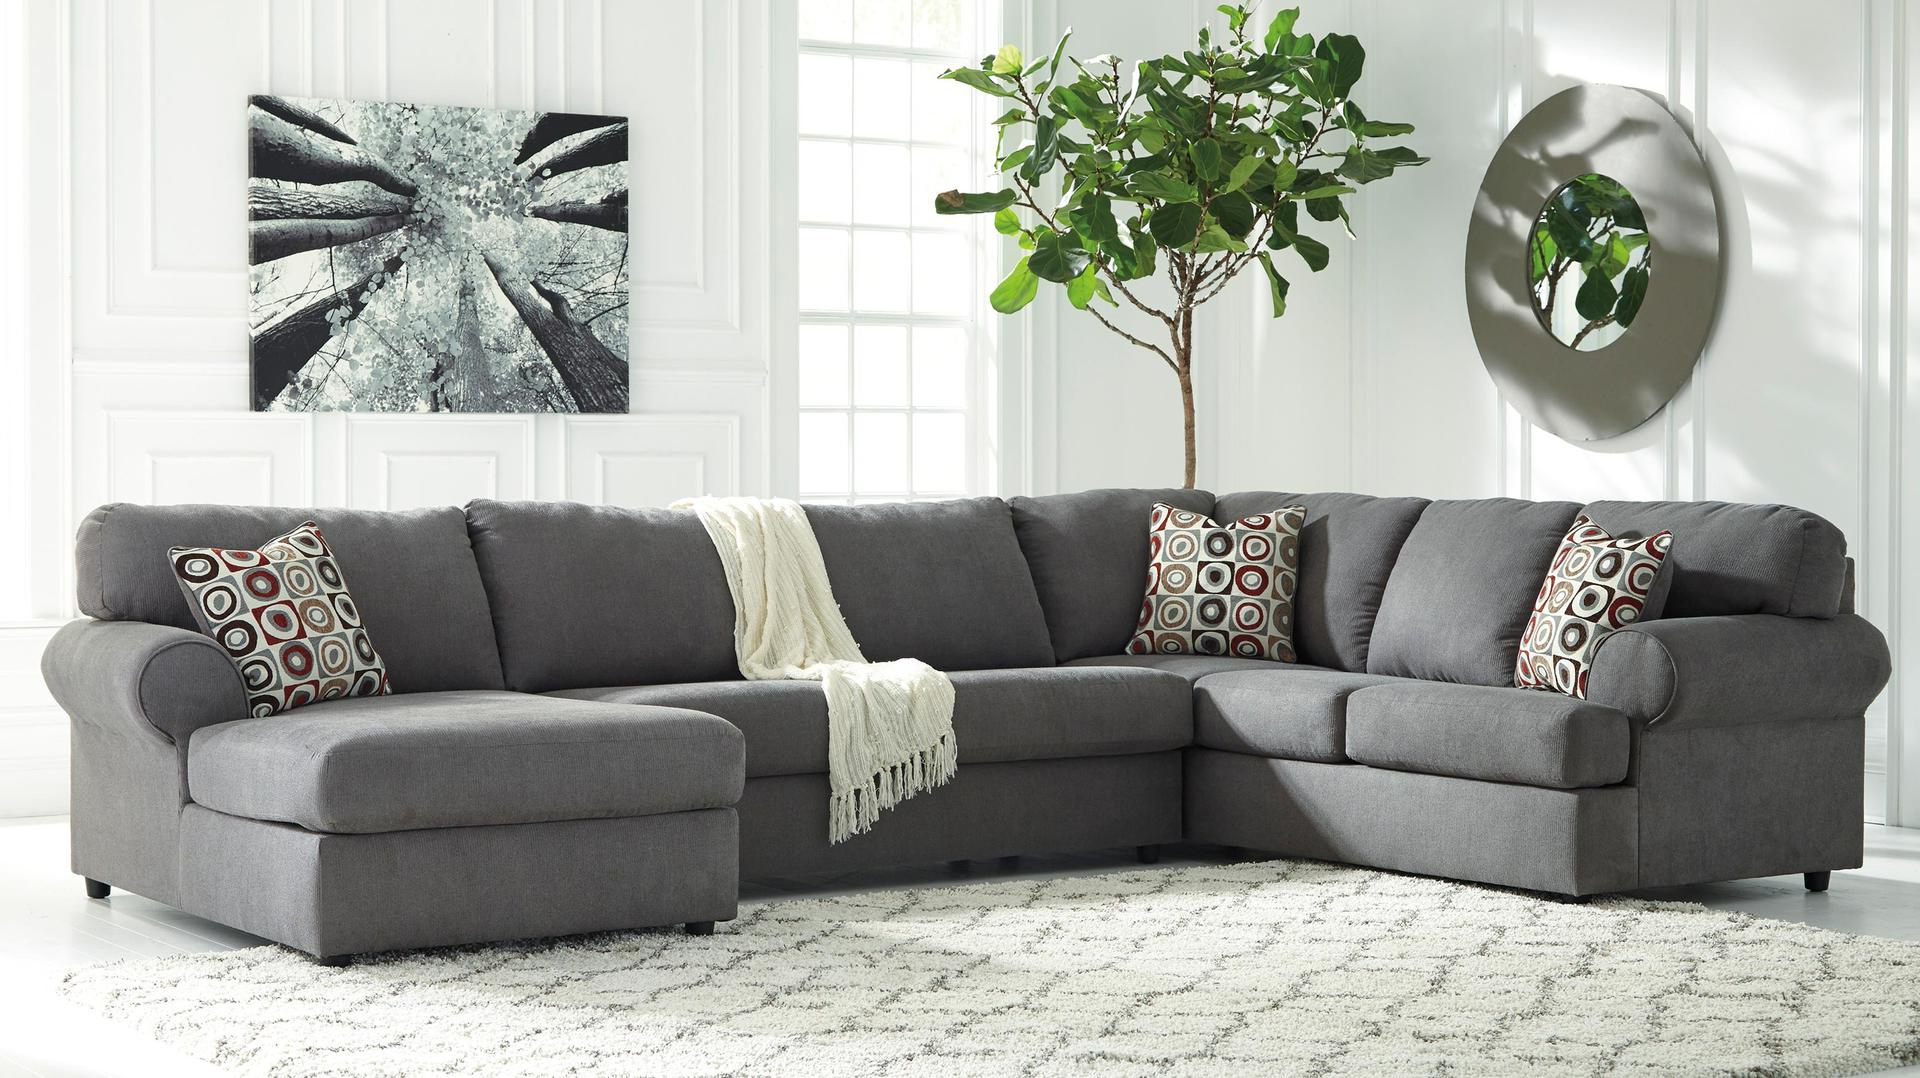 2019 Piece Sectional Sofas Leather Sofa With Chaise Cover Couch Covers Within Gordon 3 Piece Sectionals With Raf Chaise (View 1 of 20)